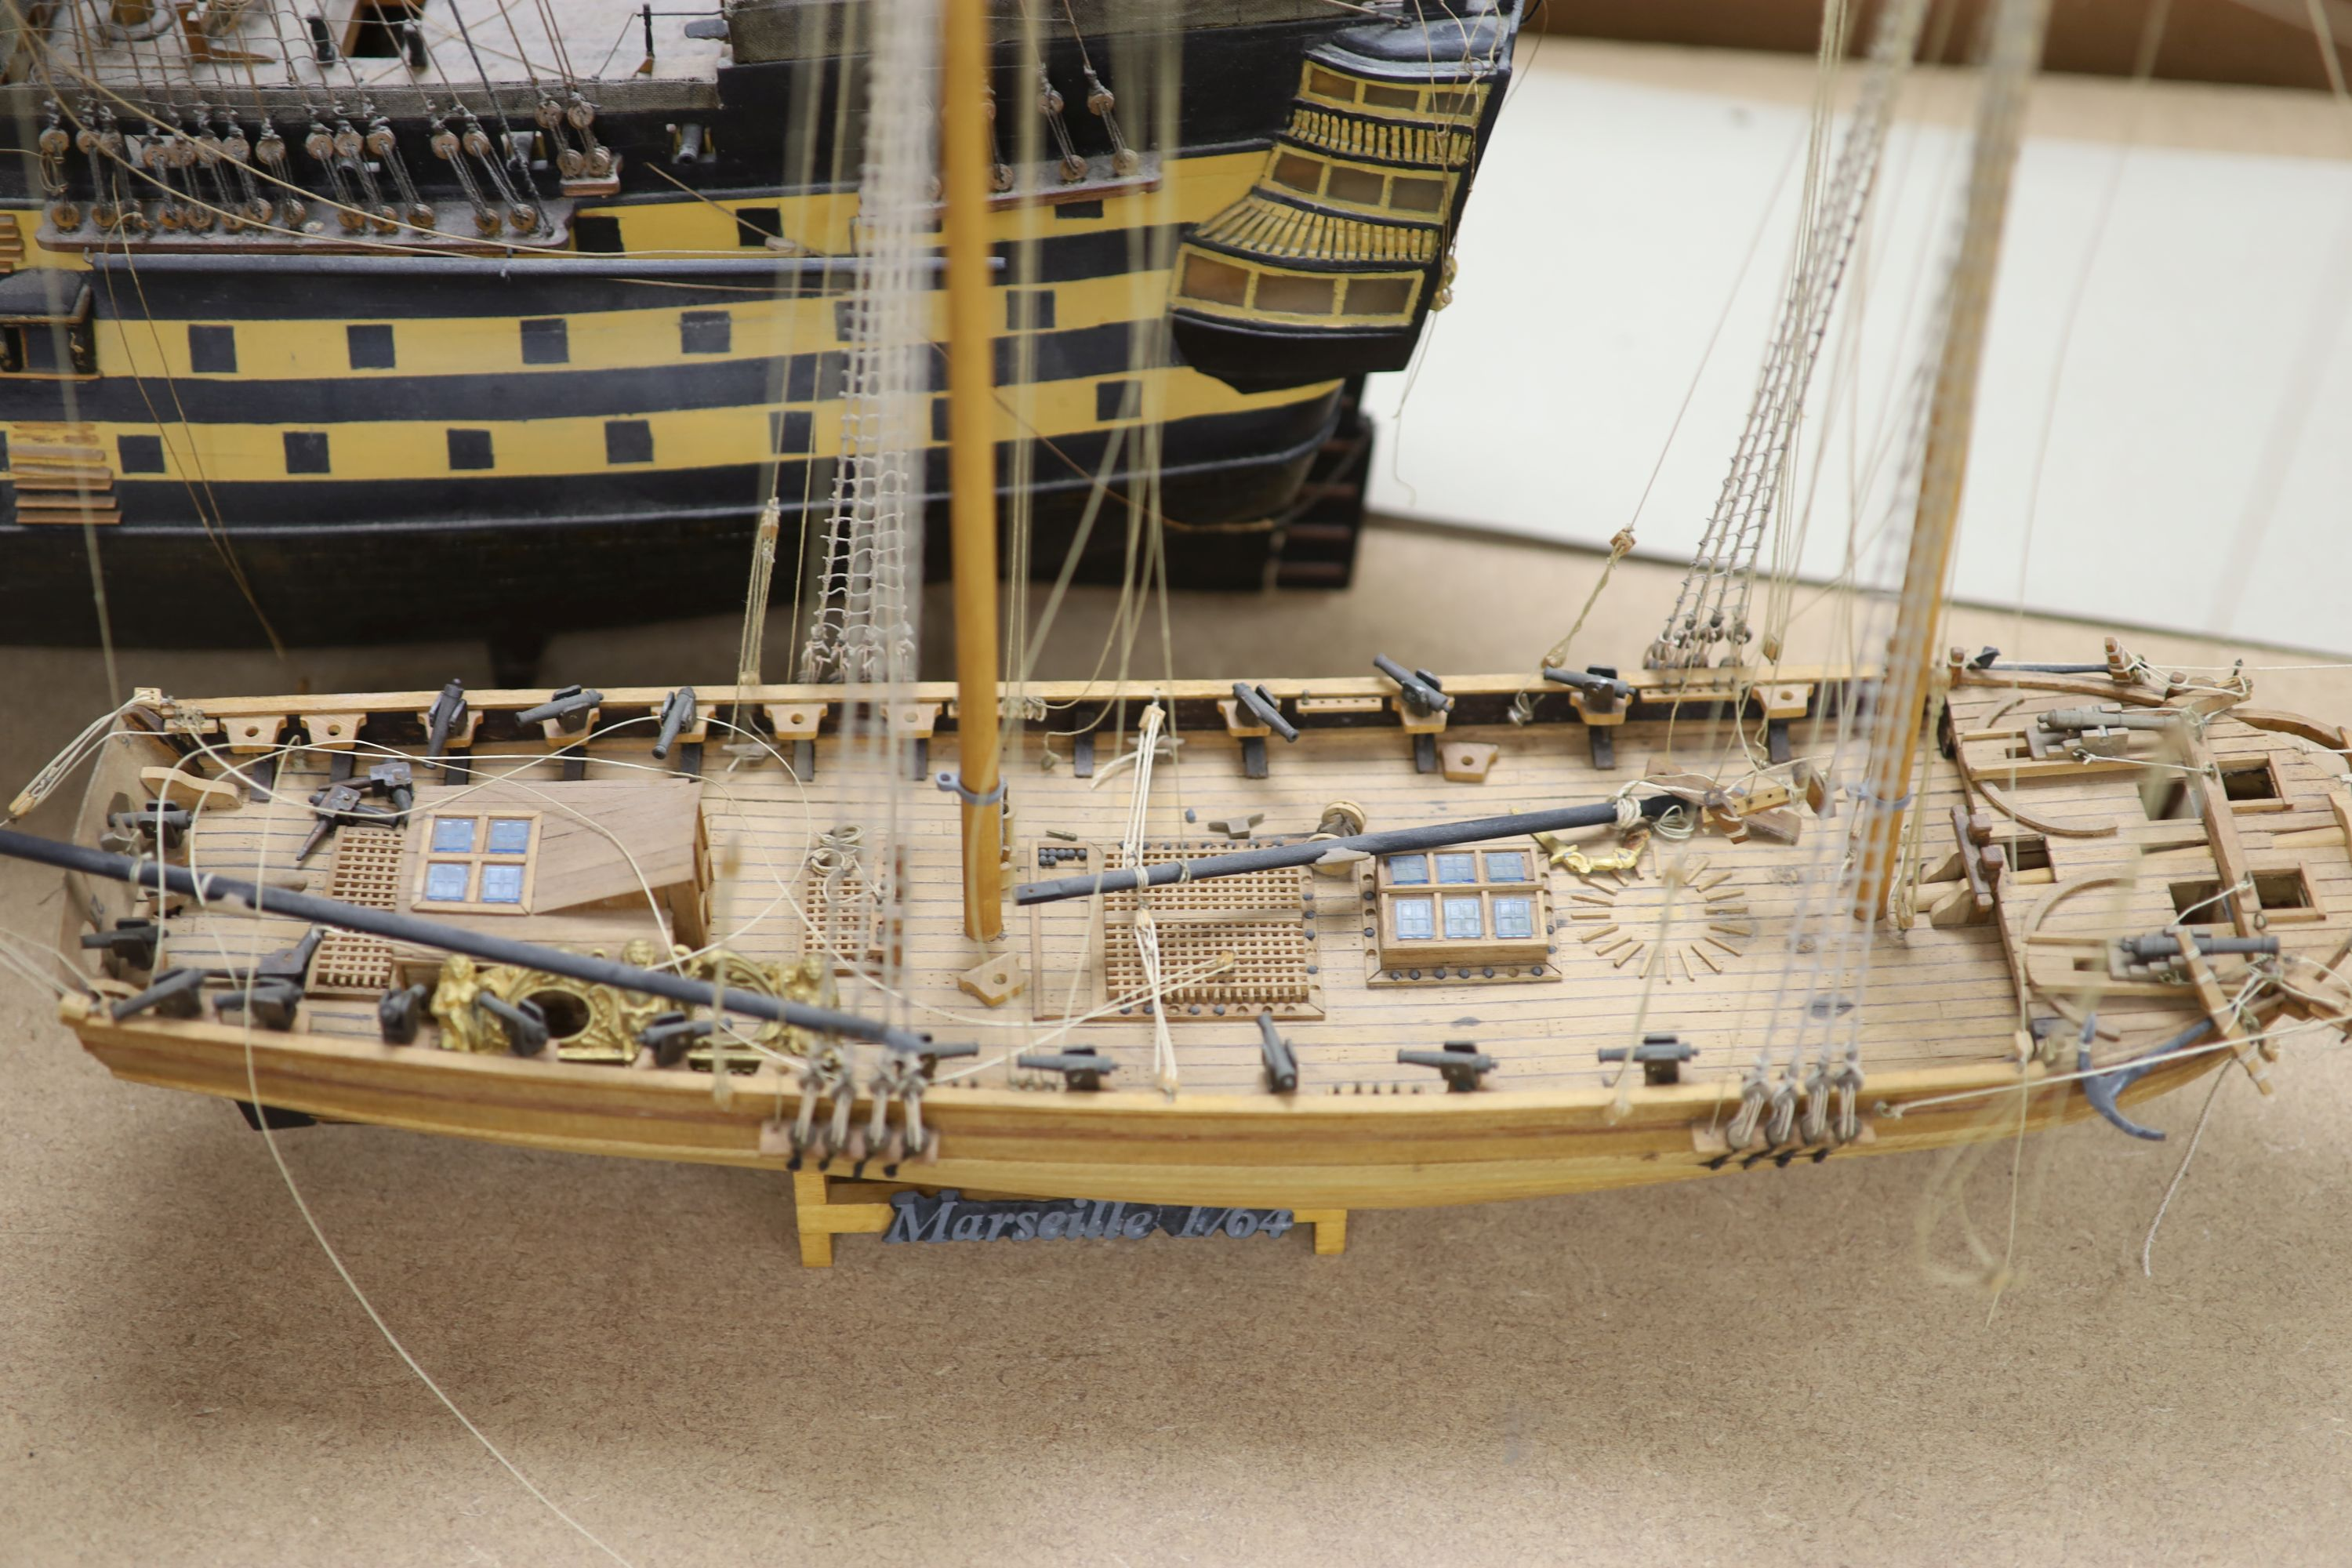 A model of 'The Victory', width 90cm, and a model of 'The Marseille' - Image 3 of 8